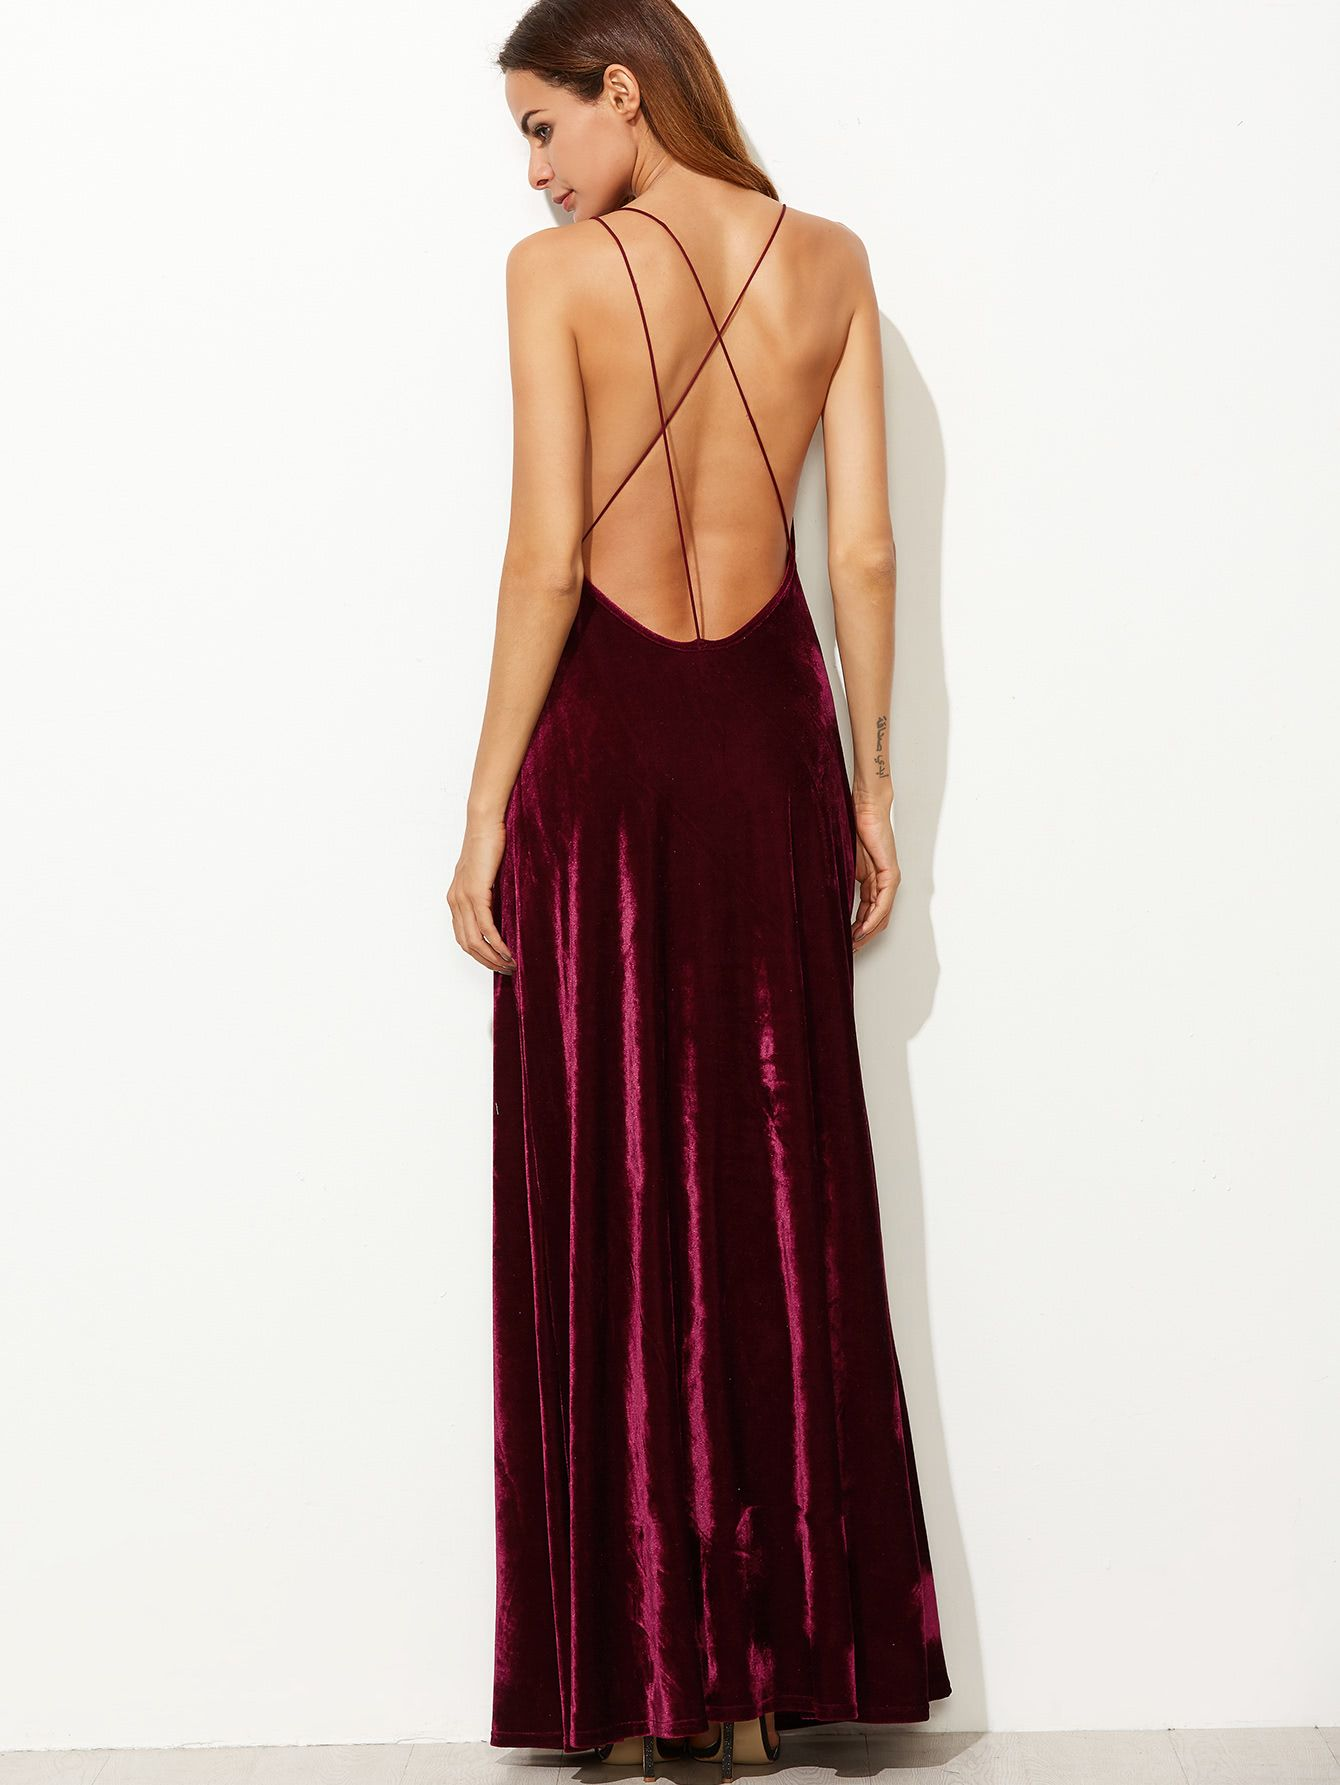 cf96b0608f6a Shop Strappy Backless Wrap Velvet Dress online. SheIn offers Strappy Backless  Wrap Velvet Dress & more to fit your fashionable needs.